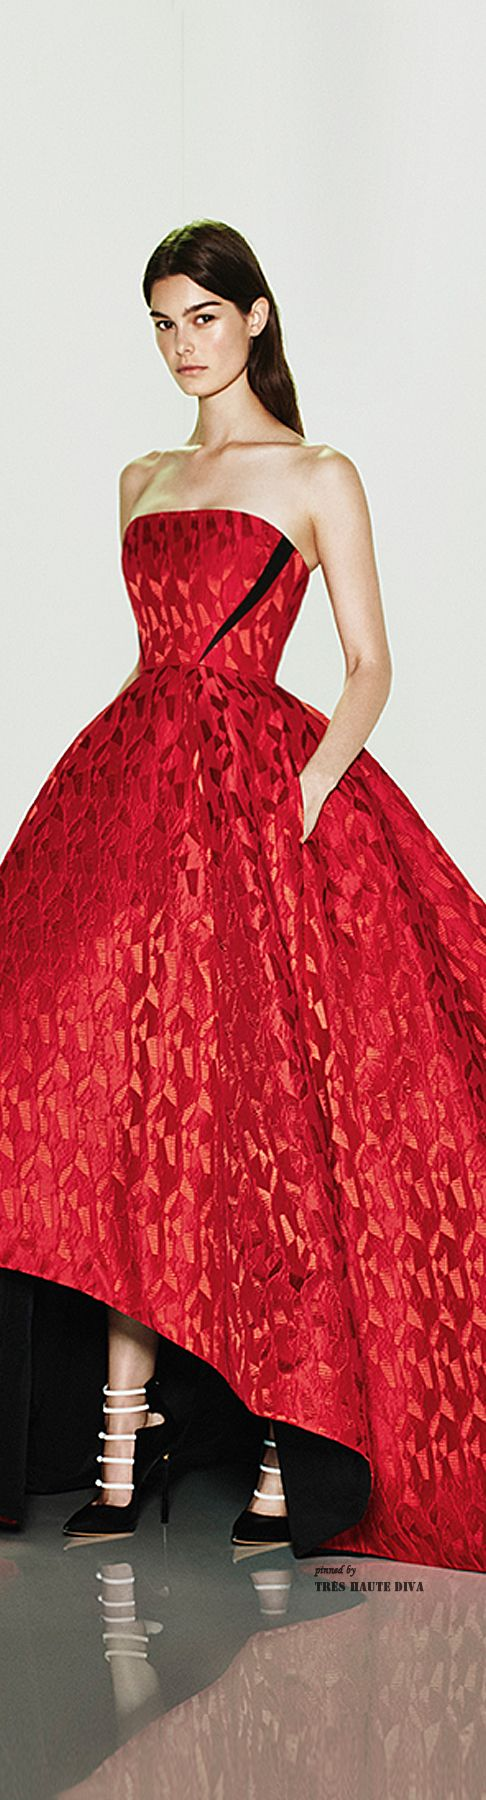 Lady in RED...Prabal Gurung Resort 2015 ❤